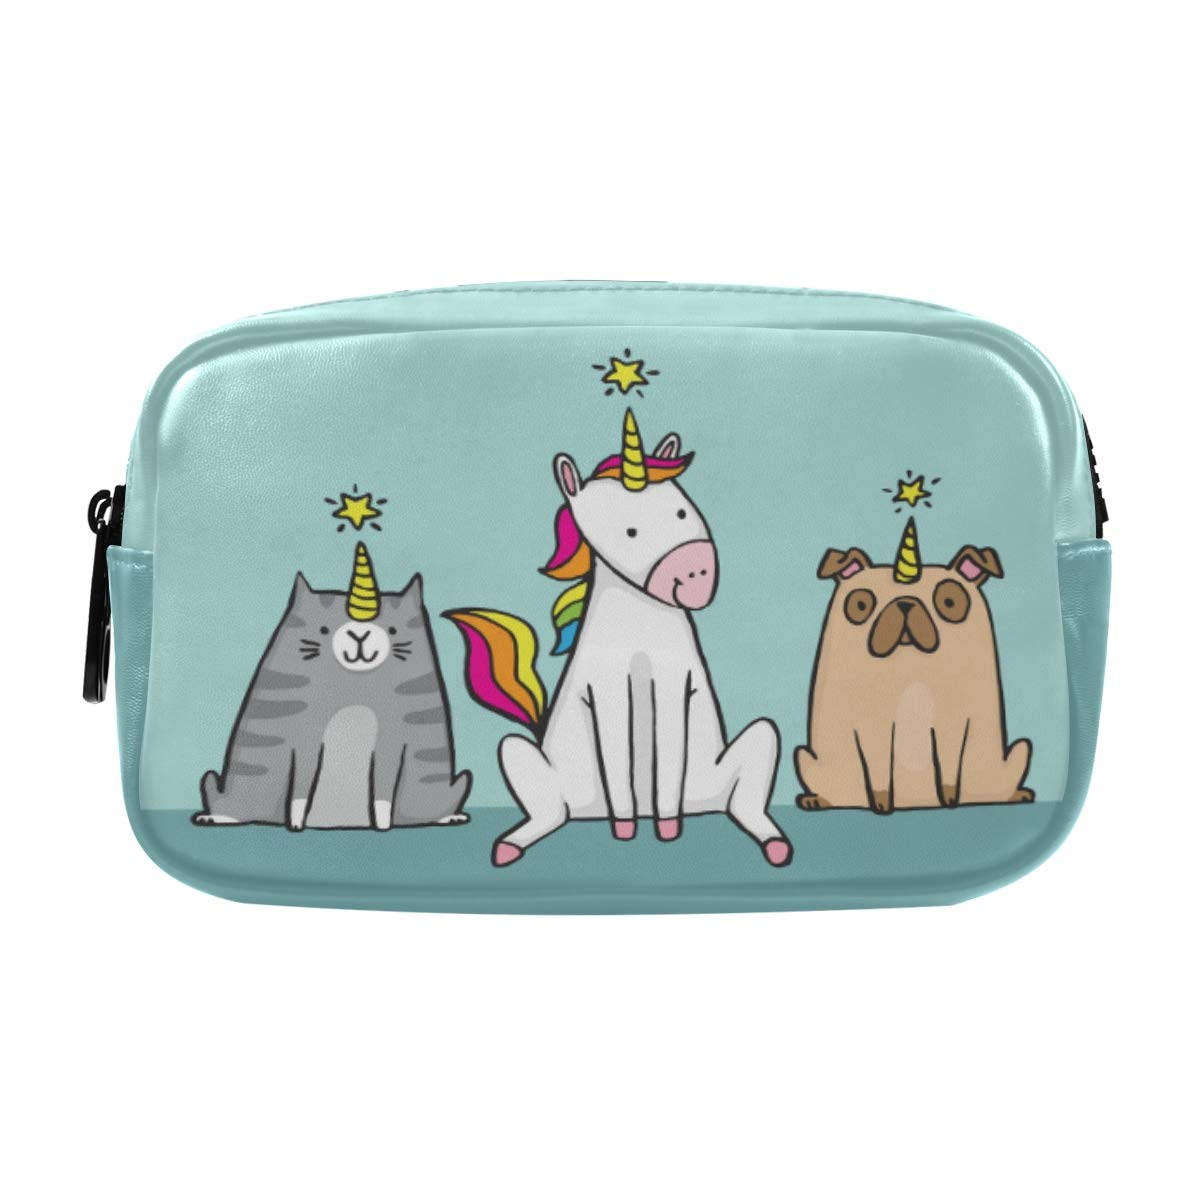 ALAZA Unicorn Cat and Pug Dog Cosmetic Bag Leather Pencil Case Waterproof Portable Travel Makeup Pouch with Zipper for Women Girls Teens